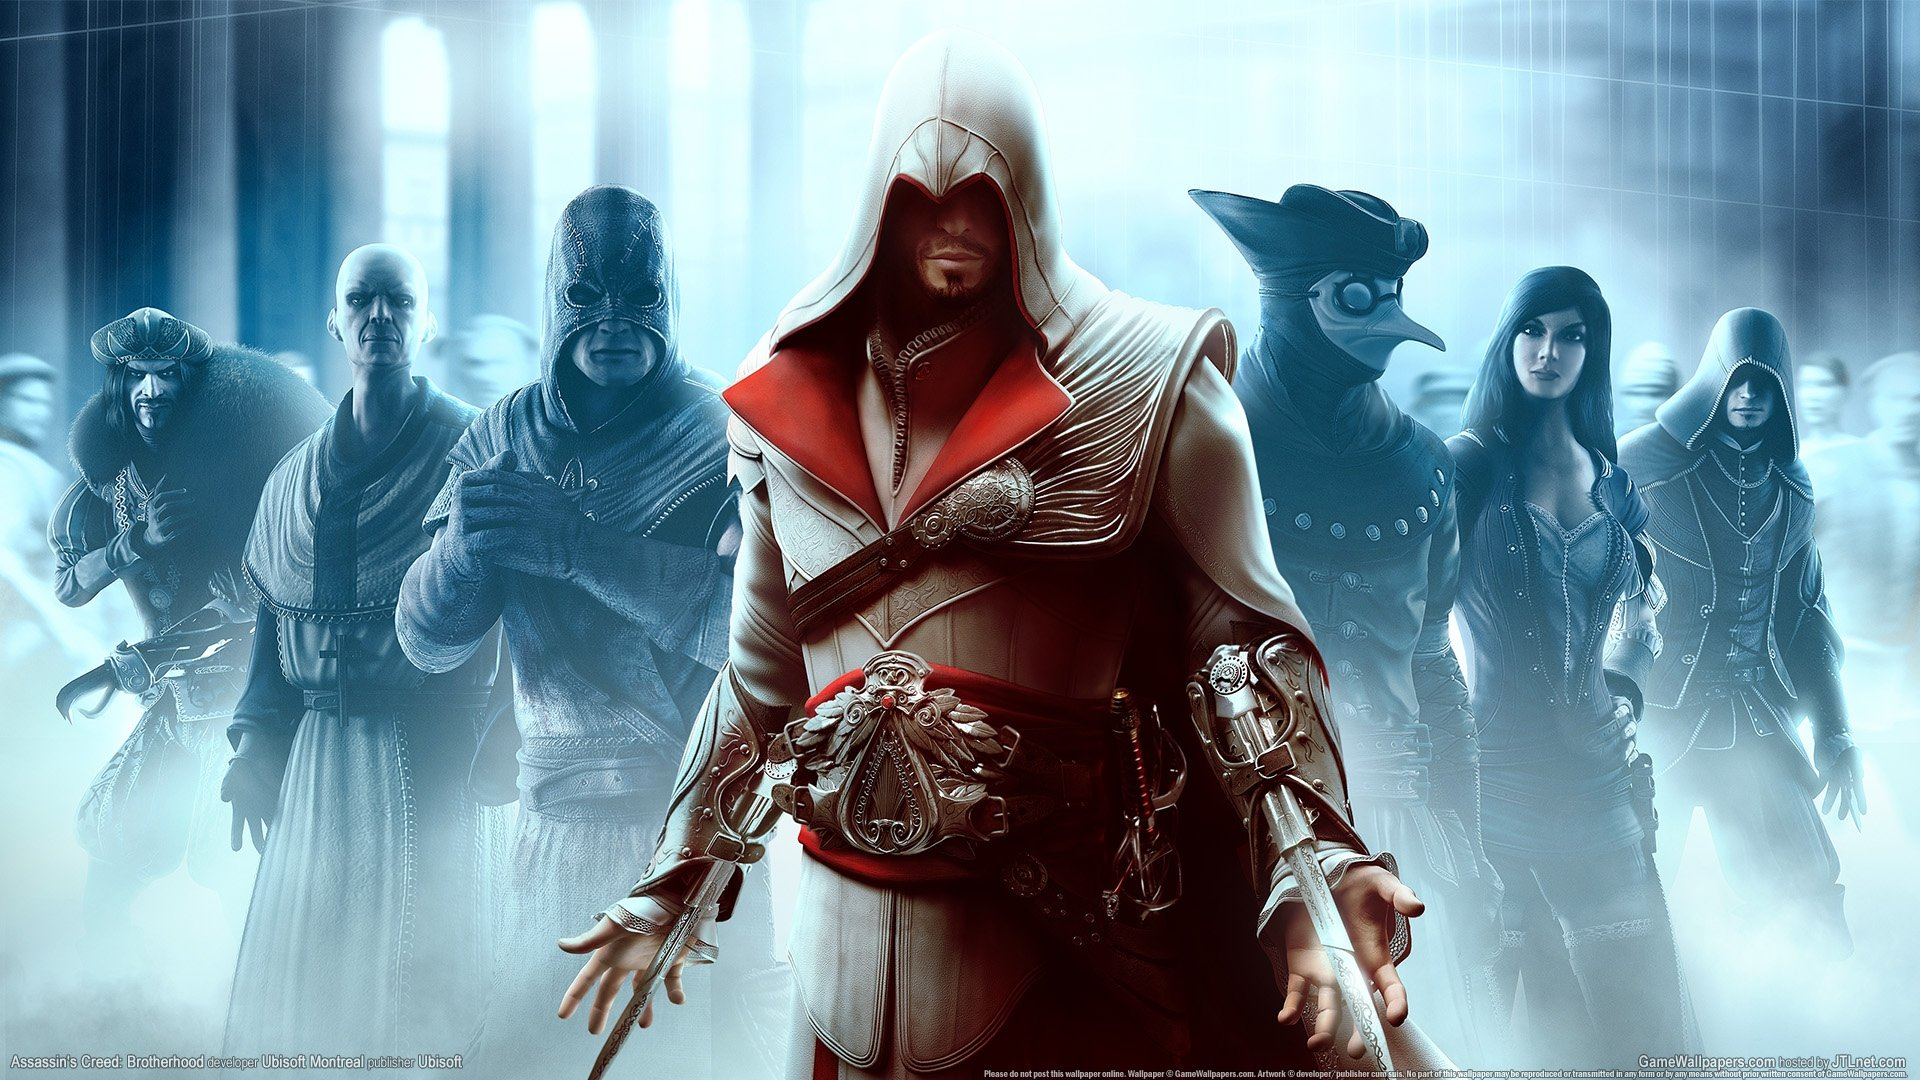 assassin's creed: brotherhood wallpapers hd for desktop backgrounds